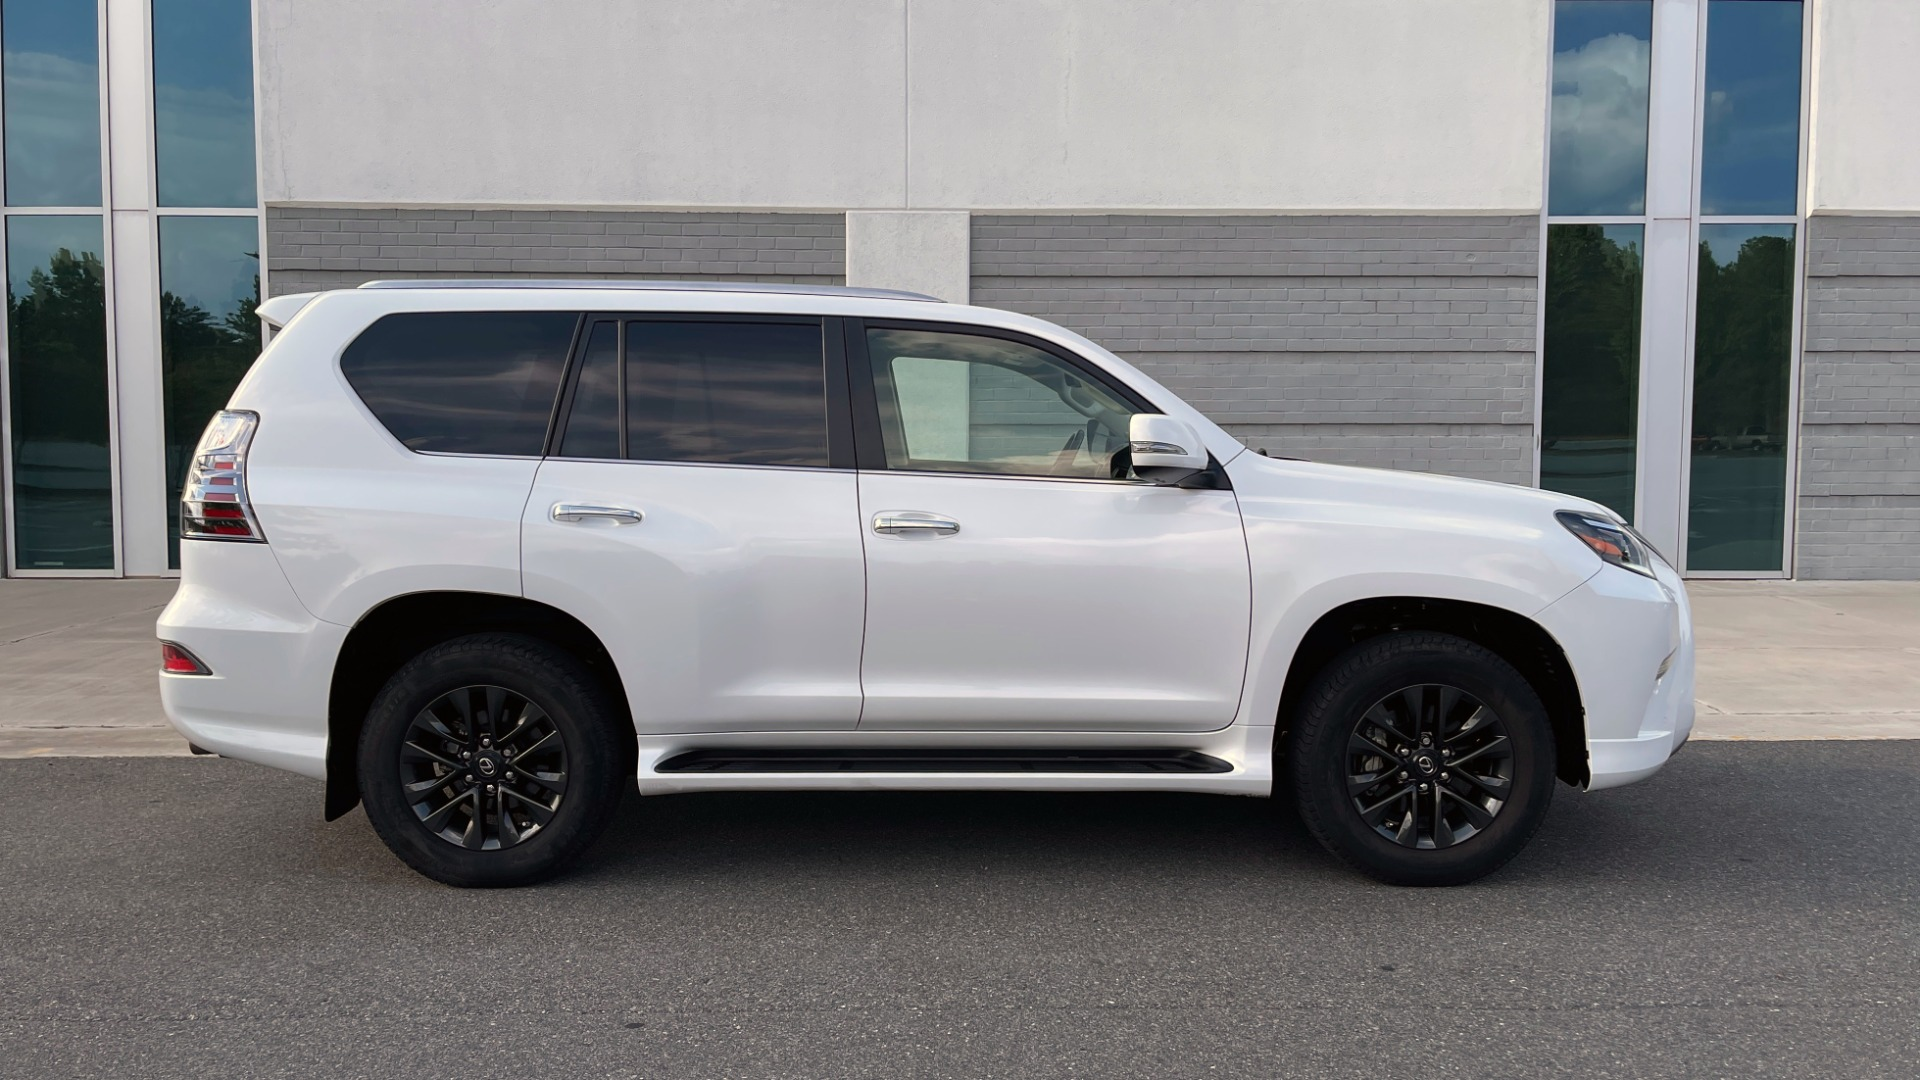 Used 2020 Lexus GX 460 PREMIUM / AWD / NAV / SUNROOF / 3-ROW / REARVIEW for sale $54,495 at Formula Imports in Charlotte NC 28227 7